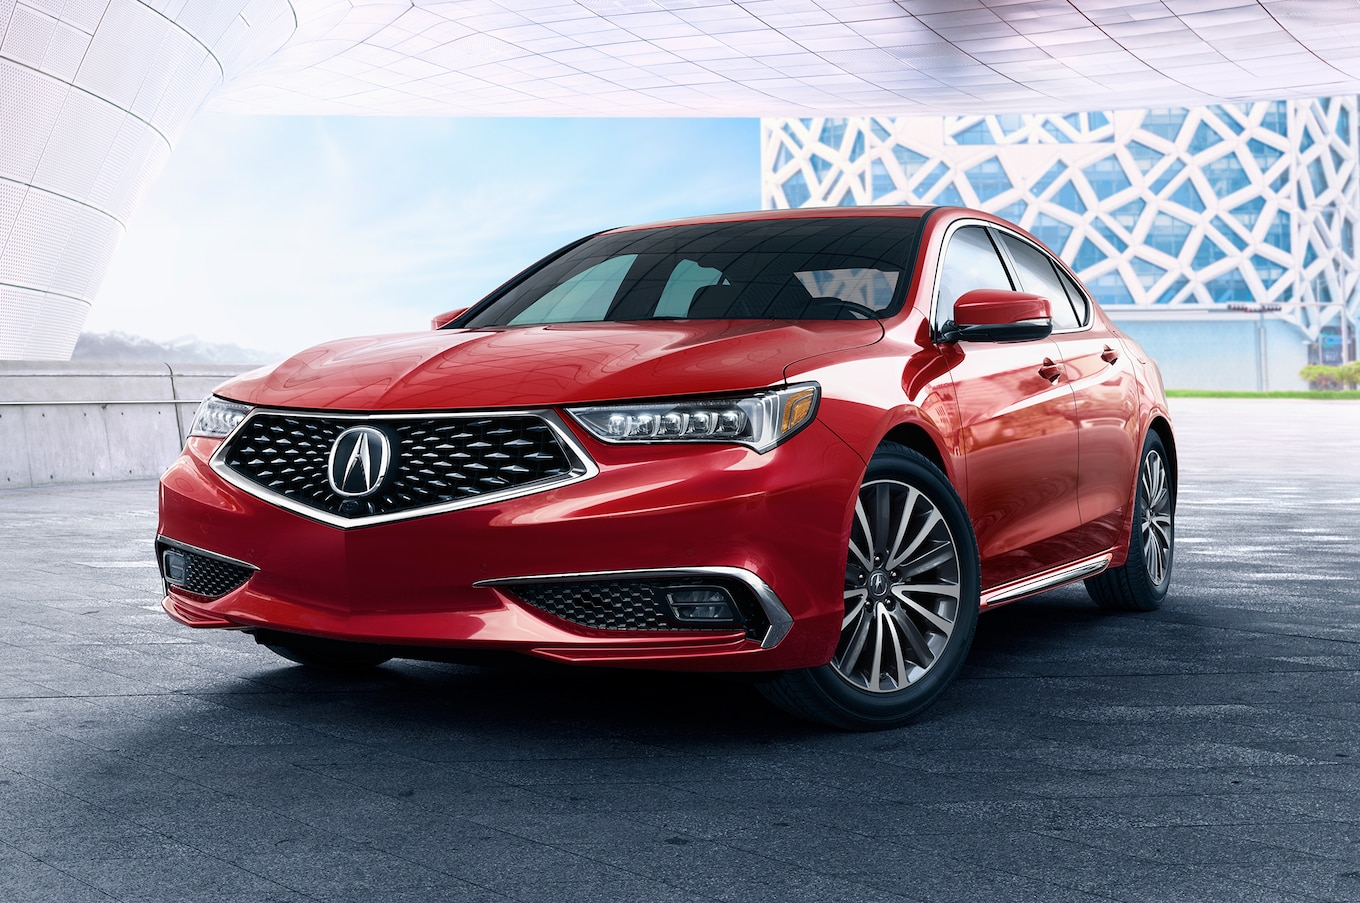 Suv Wallpapers Hd 2018 Acura Tlx Reviews And Rating Motor Trend